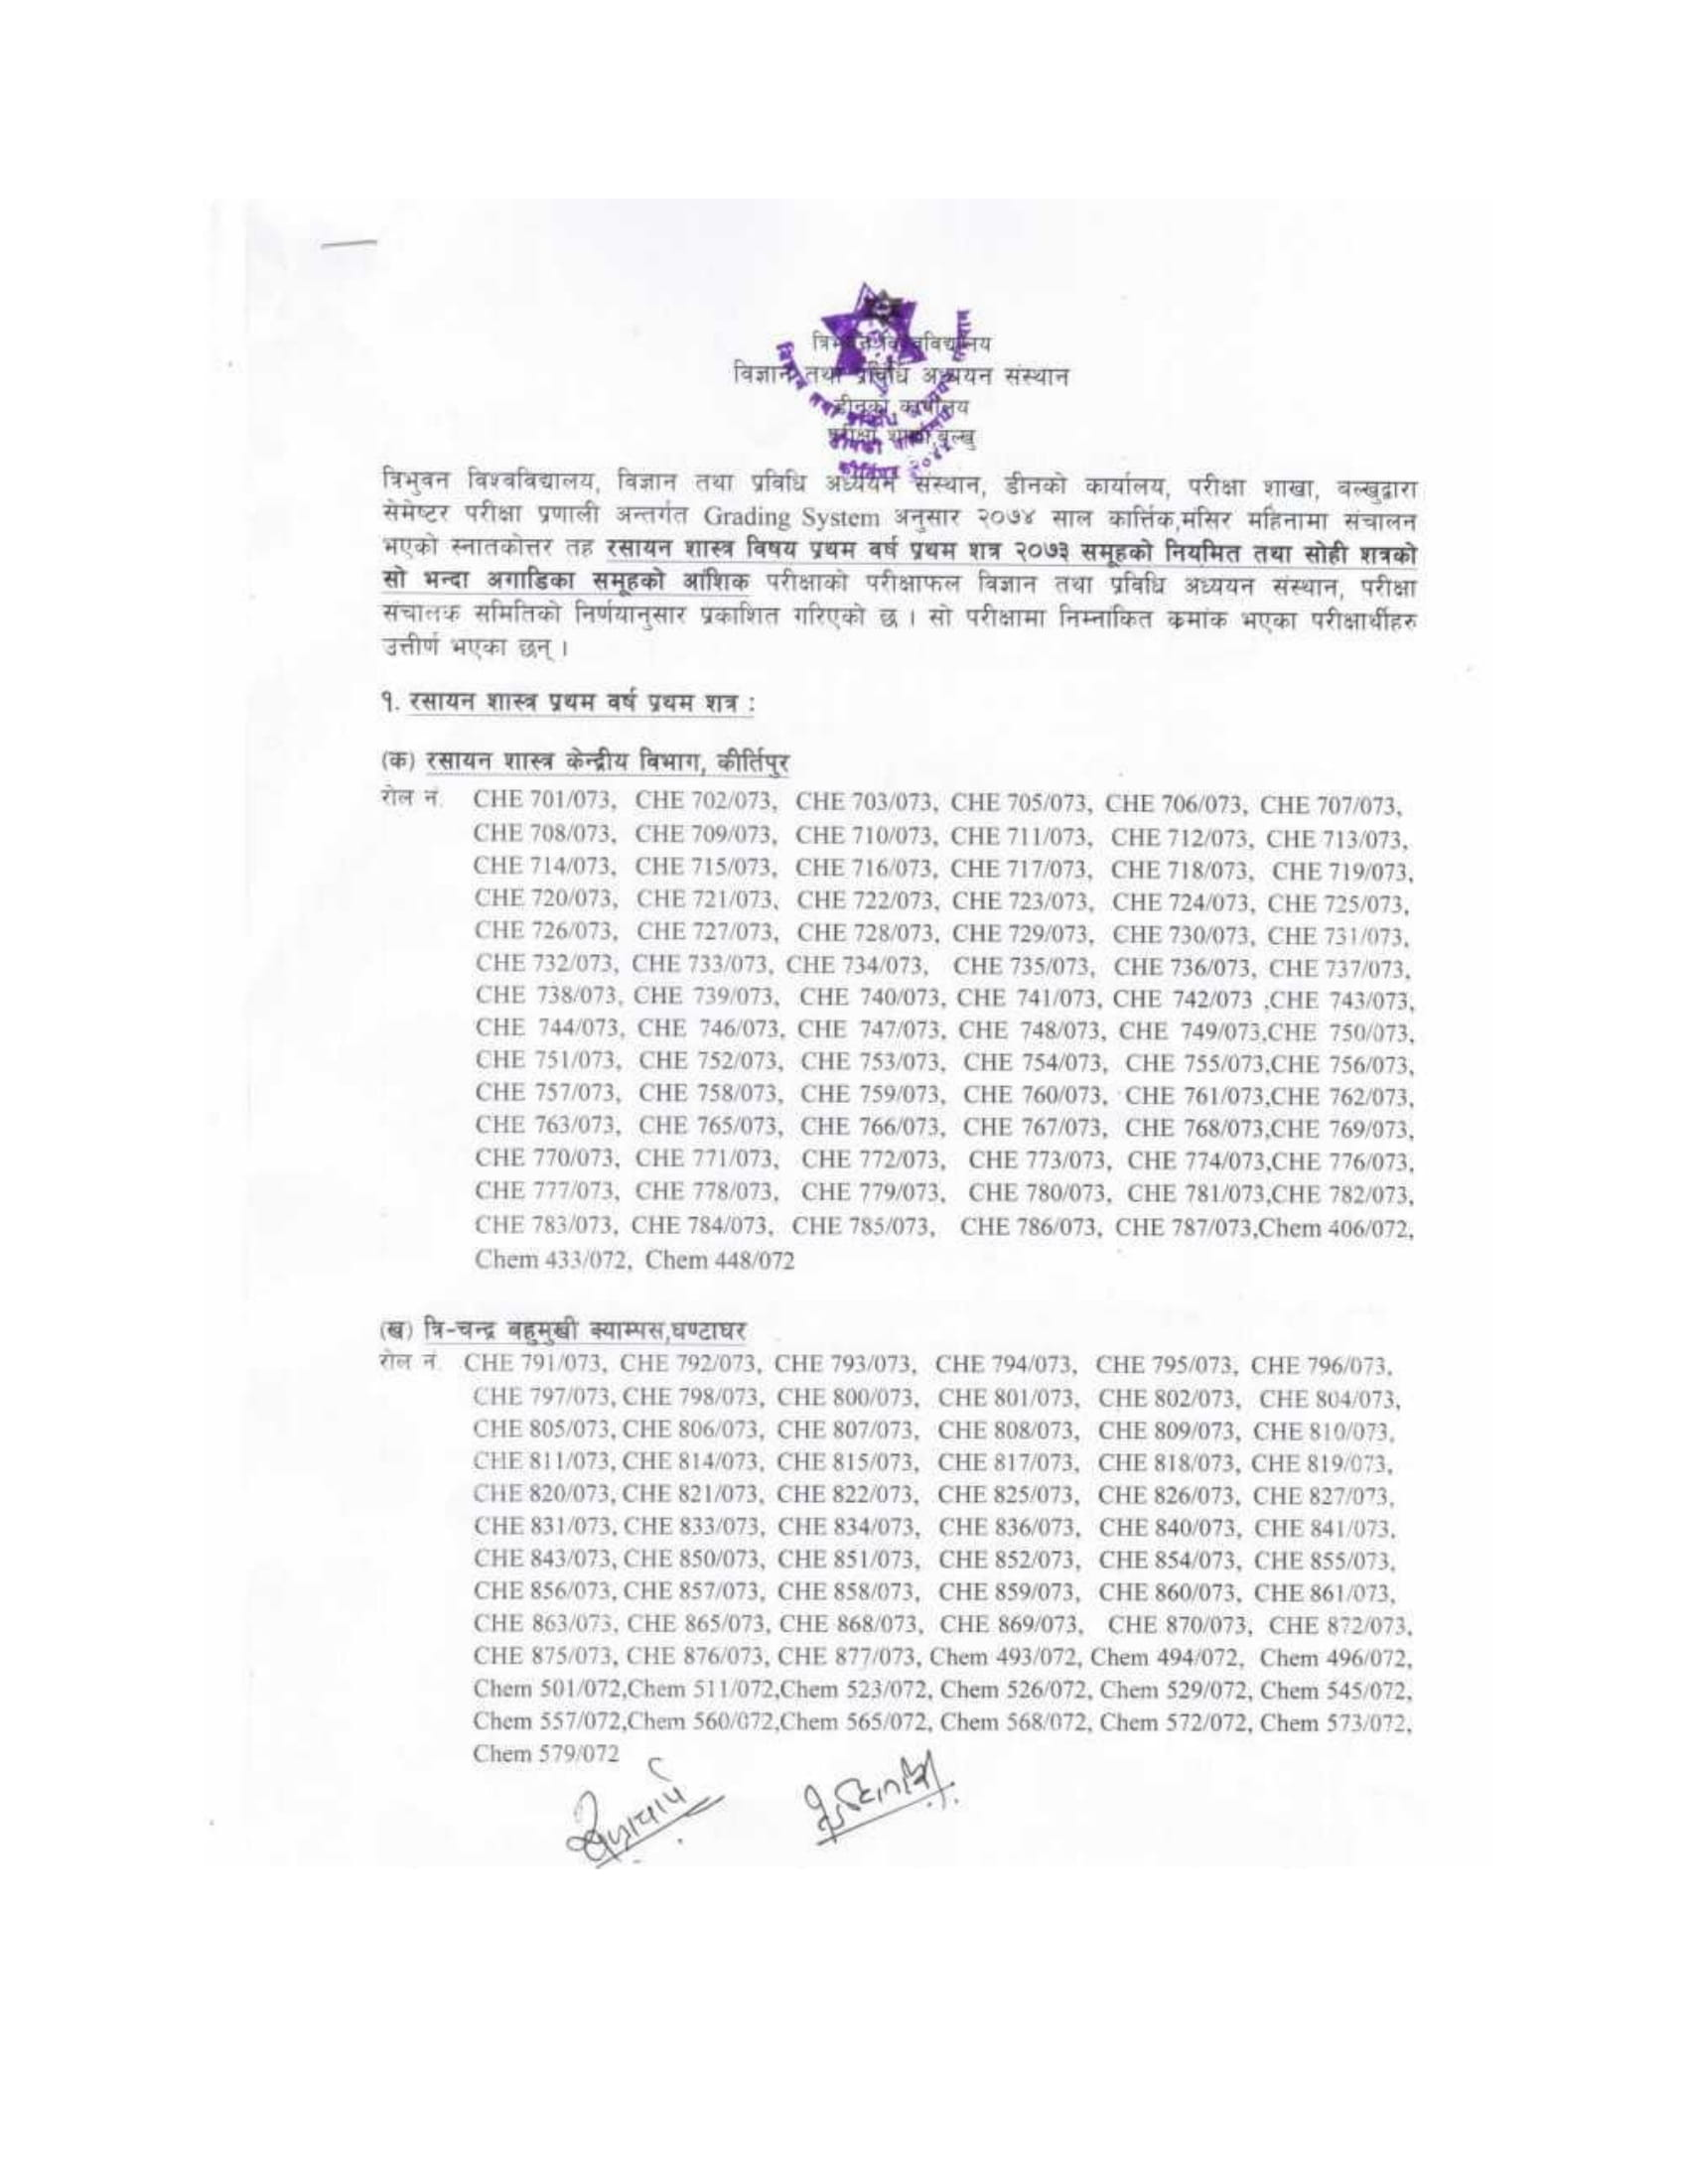 M.Sc. Chemistry I Semester Exam Result 2075 published